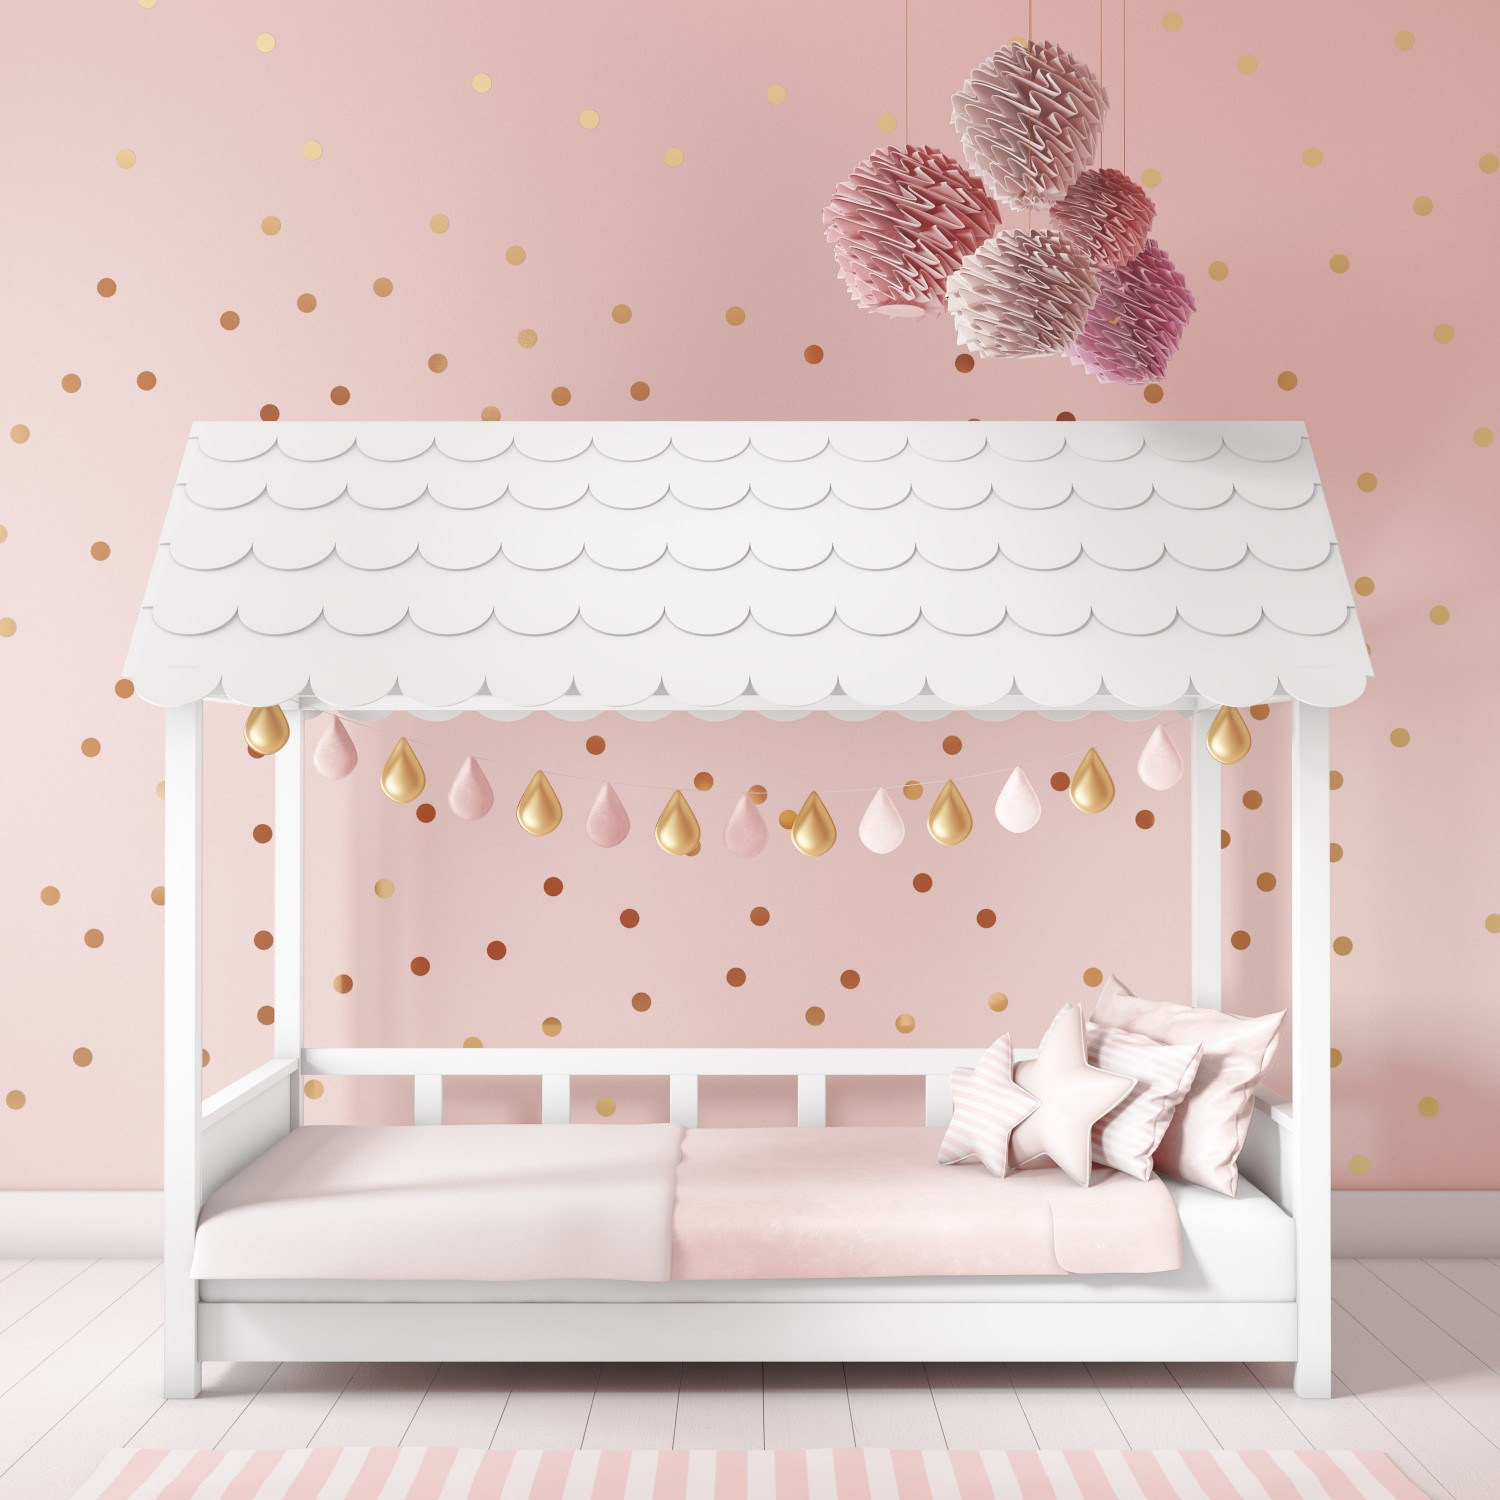 House Bed Frame Uk Details About Children House Bed Frame In White Wooden With Scalloped Roof Kids Single